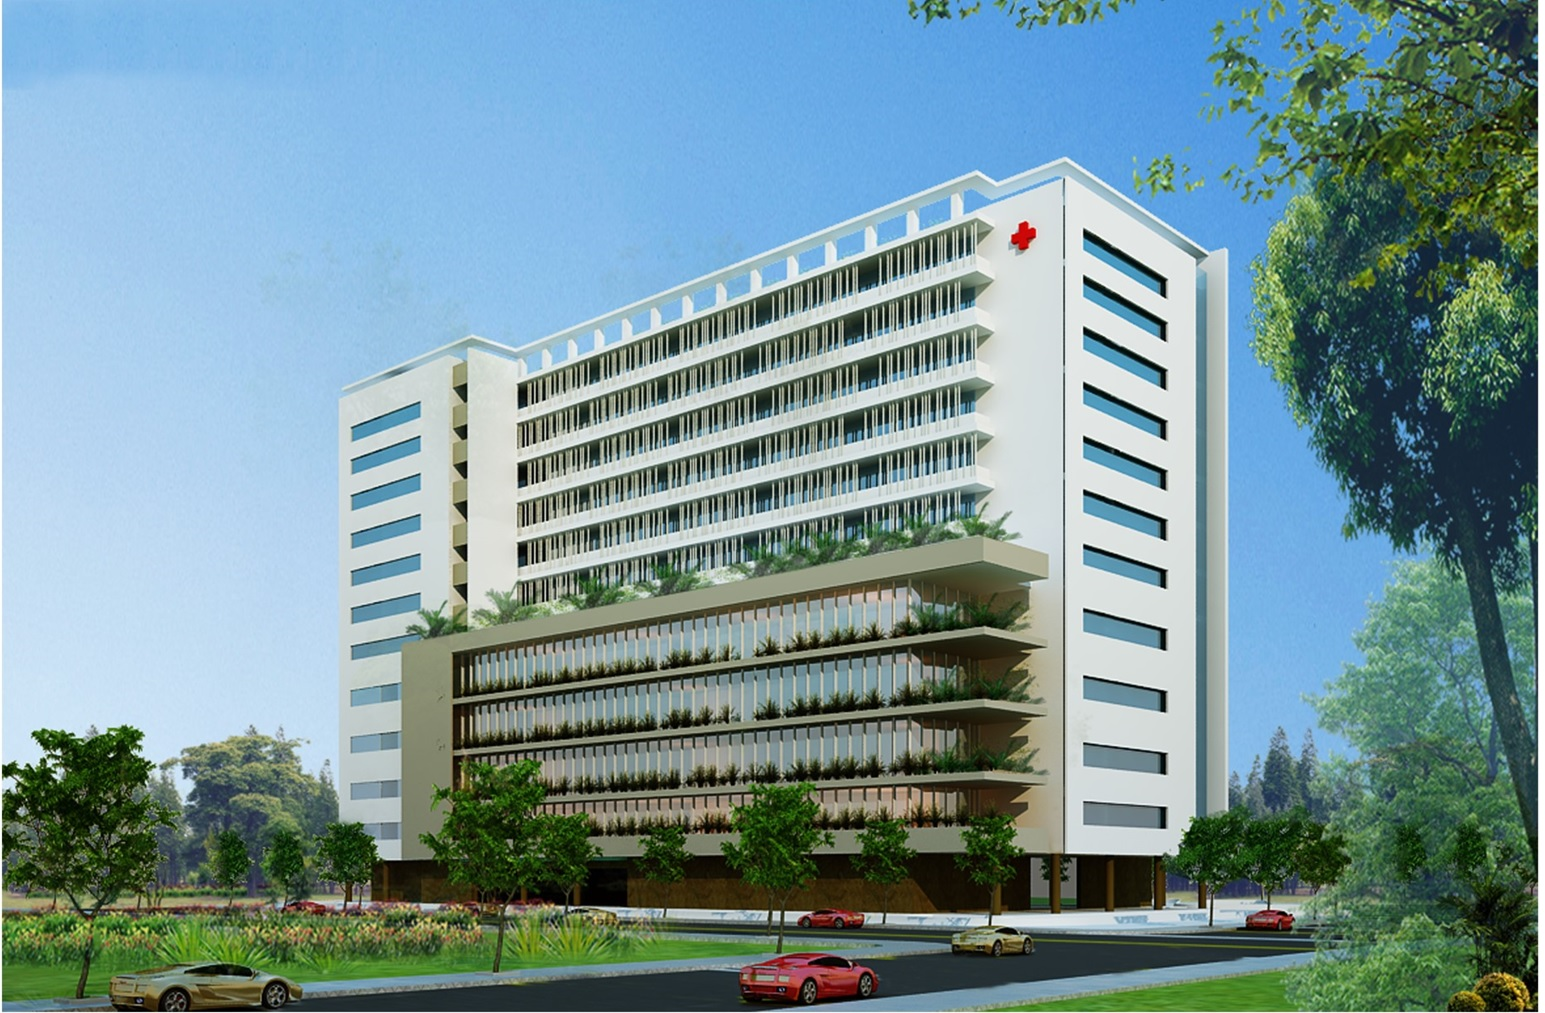 vinamed receives investment certificate for medical services centre in thanh hoa